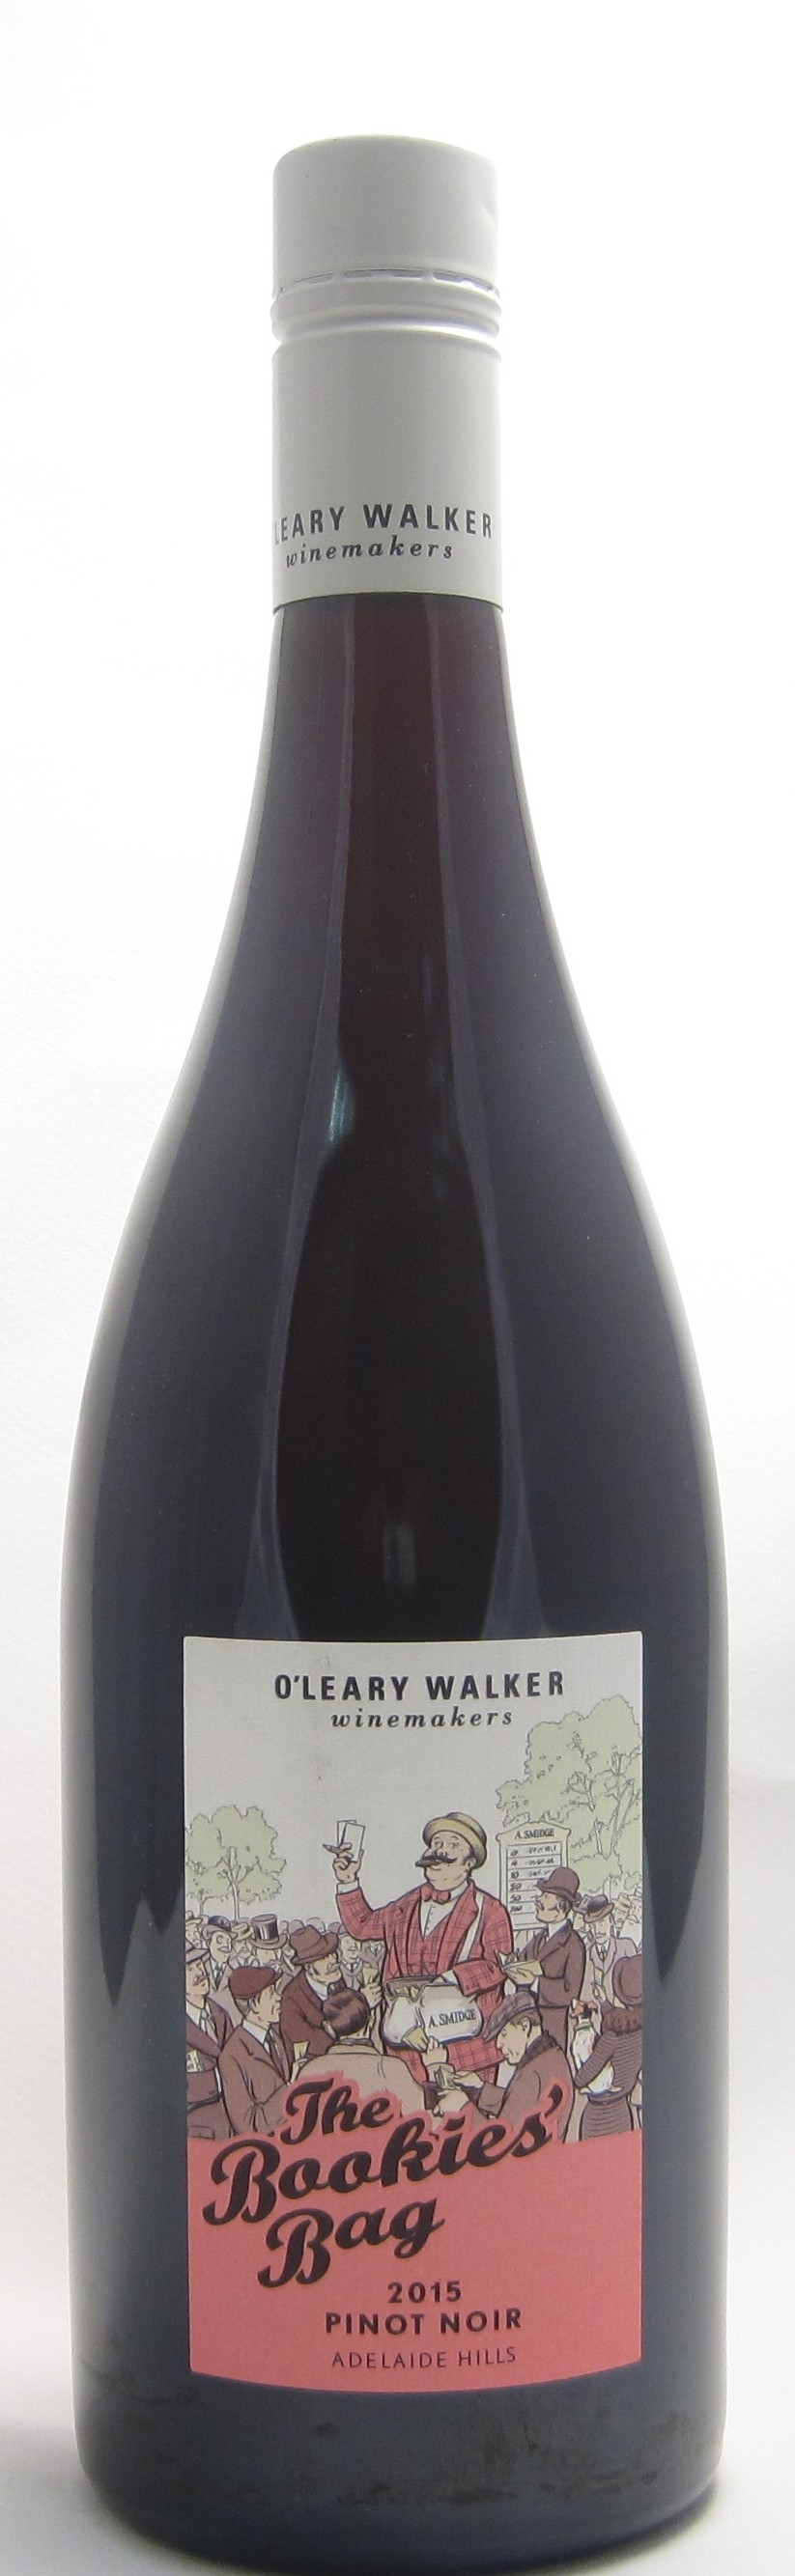 O'Leary Walker 'Bookies Bag' Pinot Noir